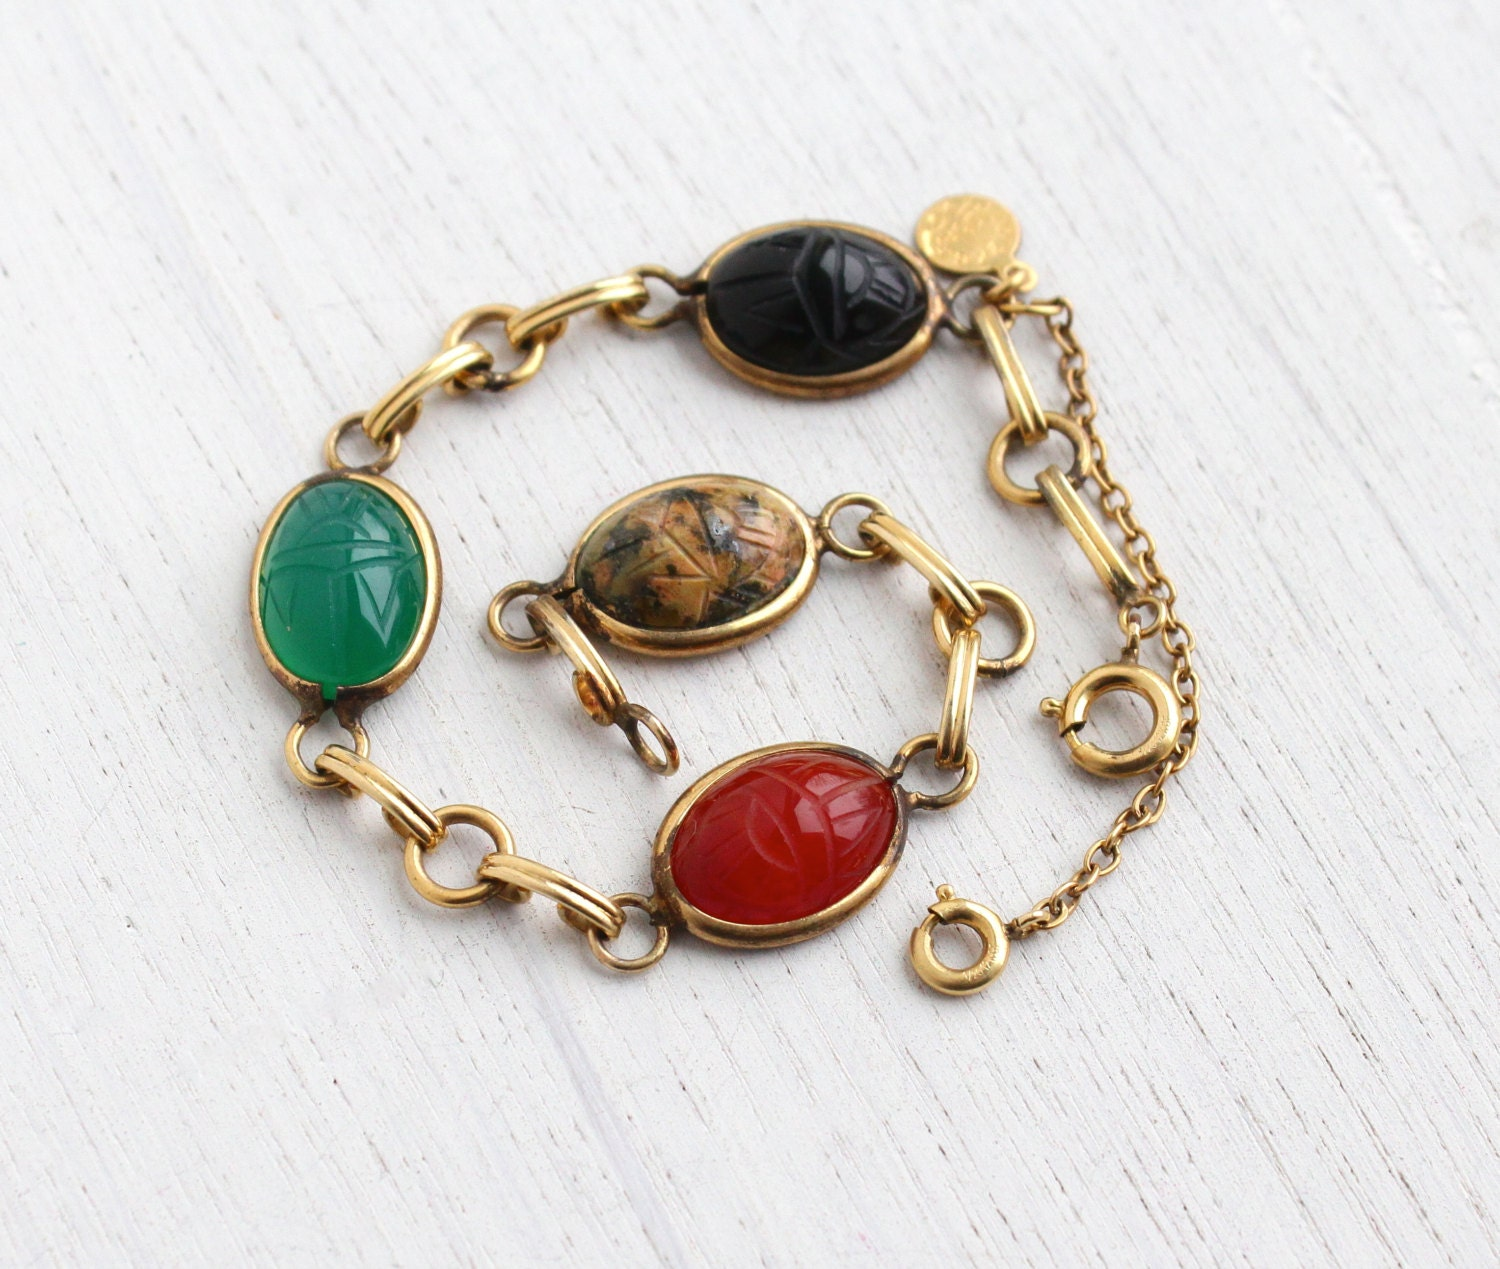 Antique Gold Charm Bracelet: Vintage Scarab Bracelet 12K Yellow Gold Filled Semi Precious